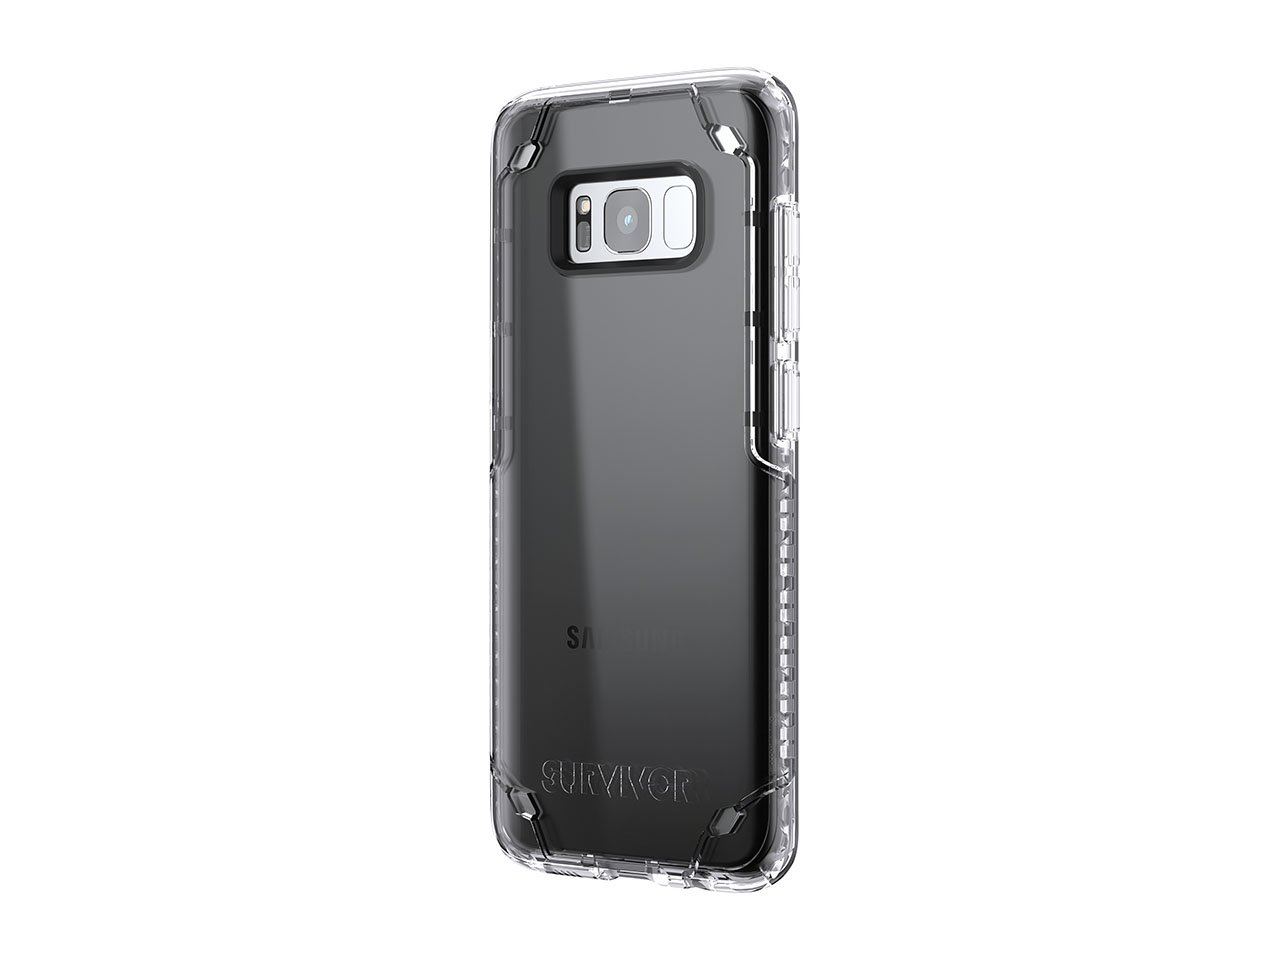 Samung Galaxy S8+ (Plus) Protective Clear Case